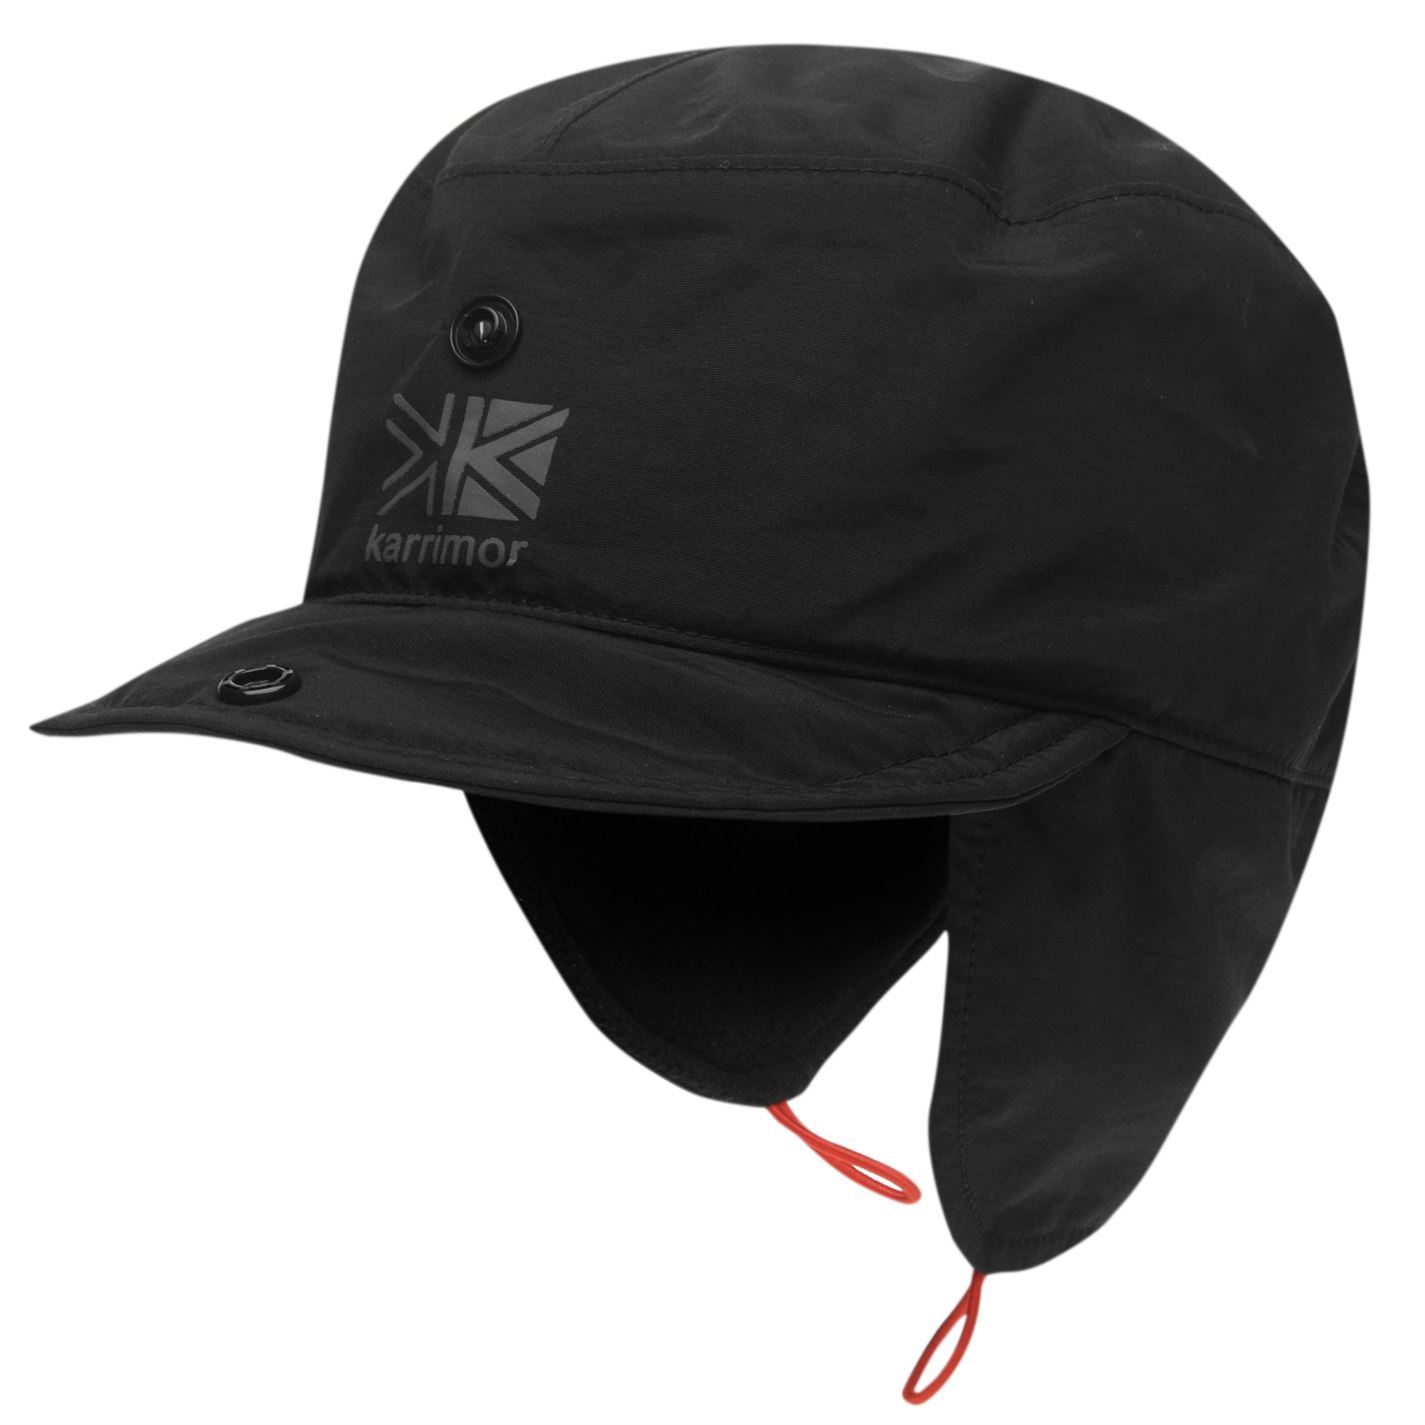 This Karrimor Mountain Hat provides a comfortable fit when outdoors 3b9fe747ab0